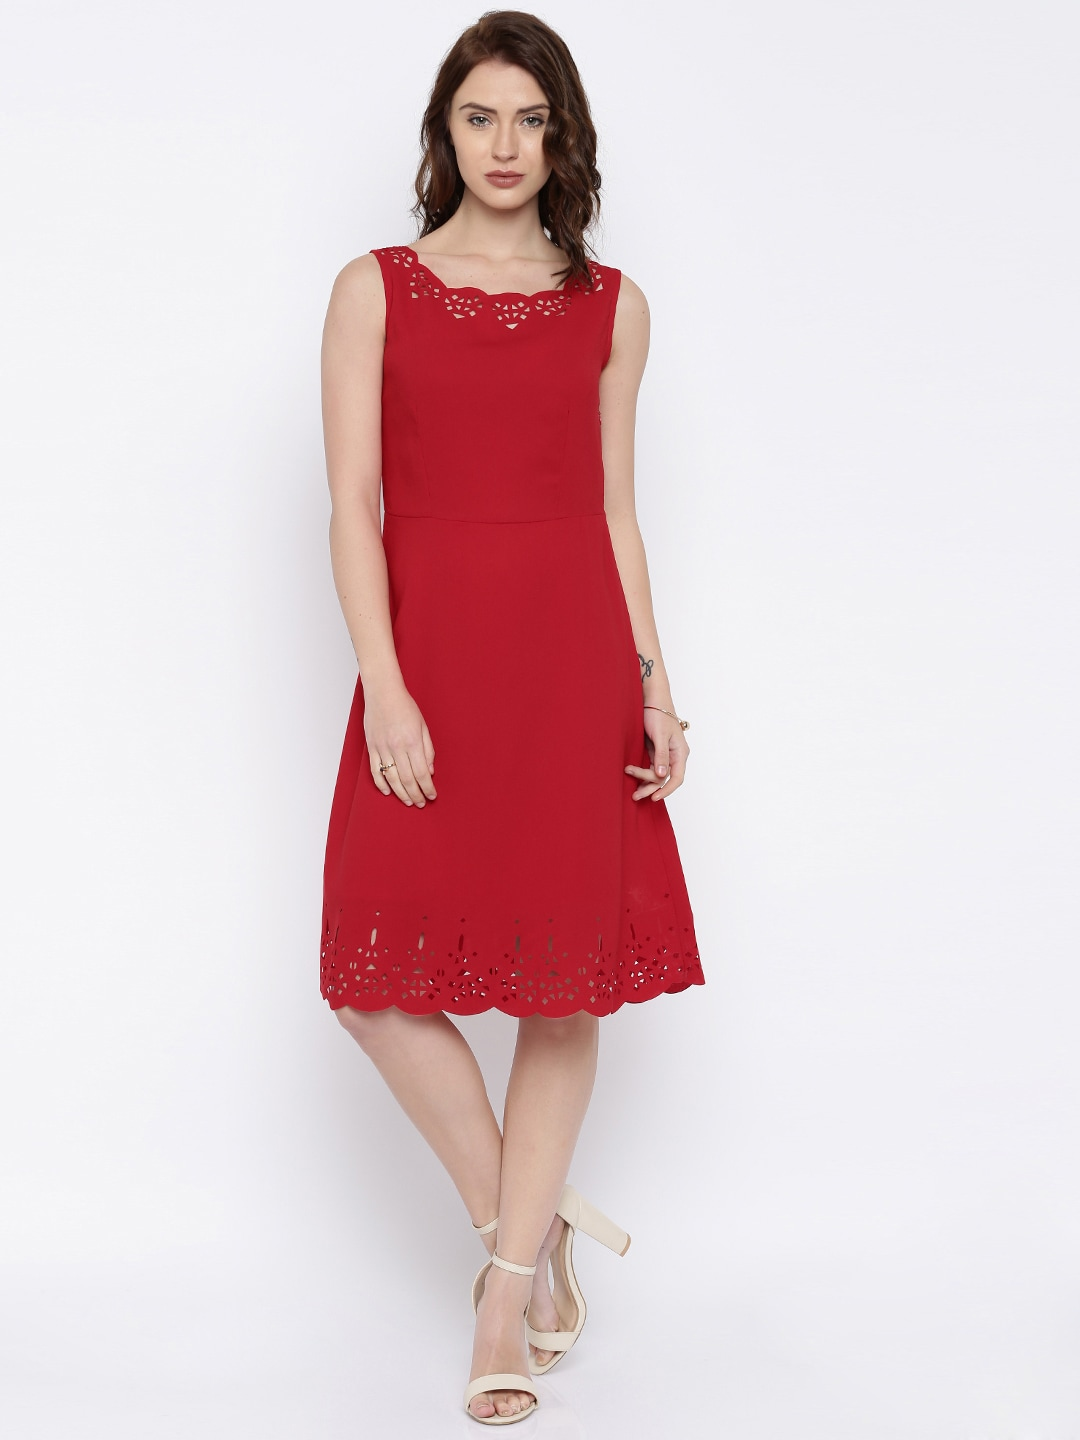 6a9cac6a2ec8 Dresses - Buy Western Dresses for Women   Girls